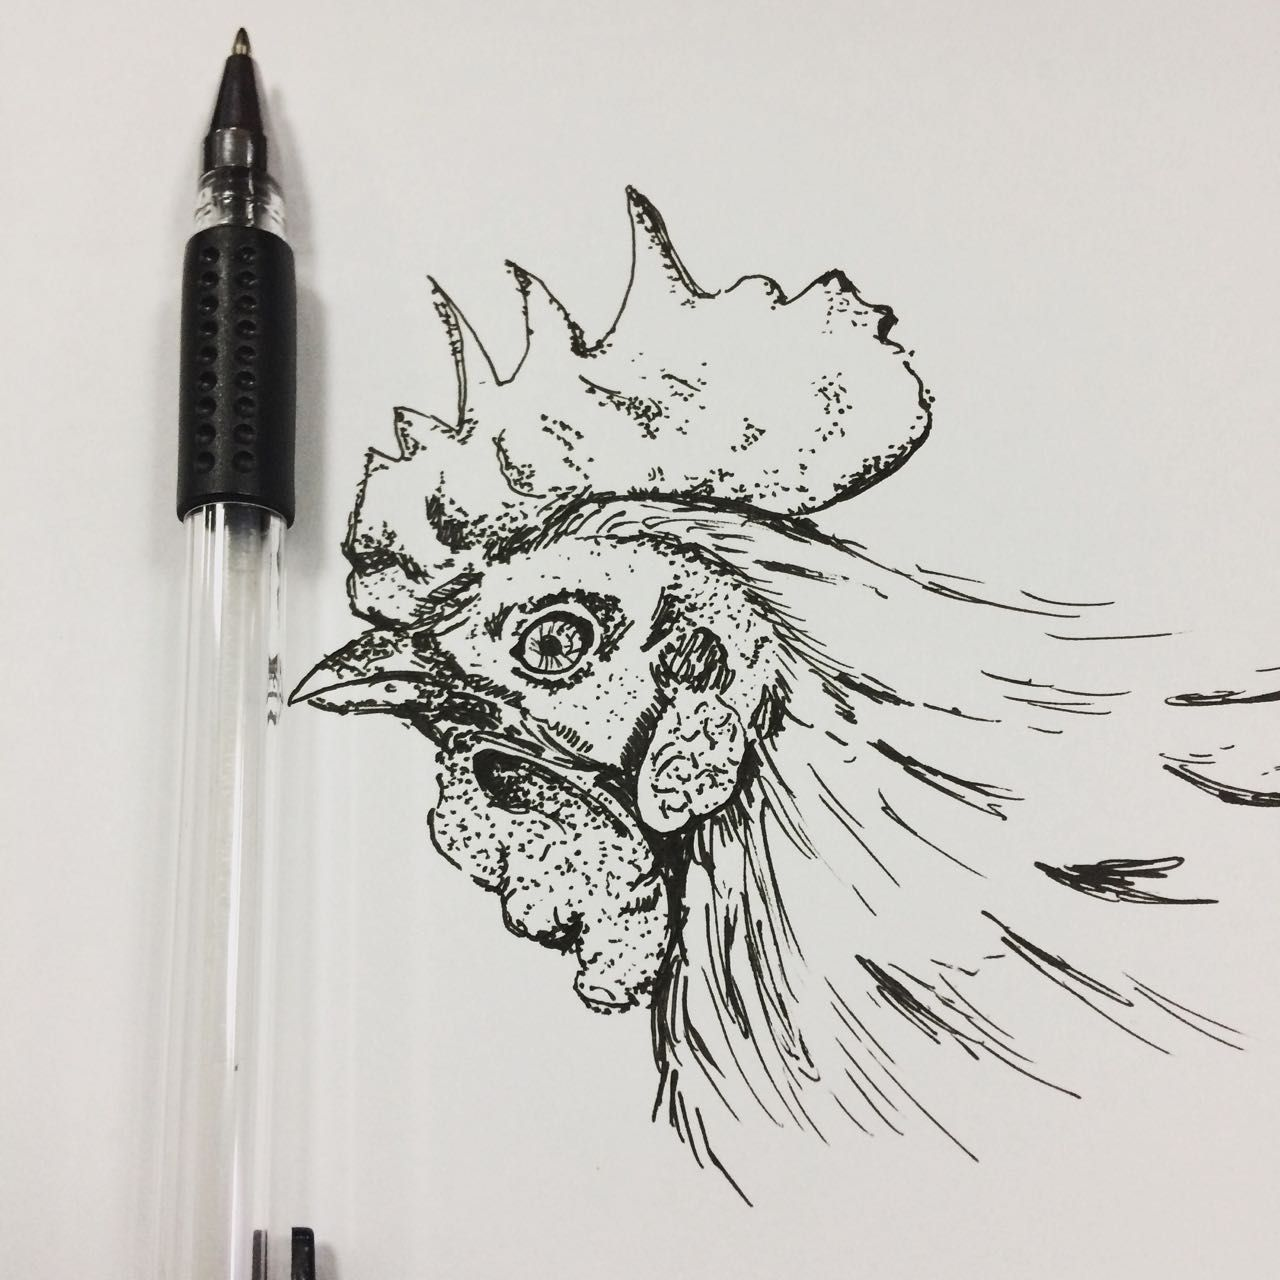 My attempt to draw a gallus gallus.